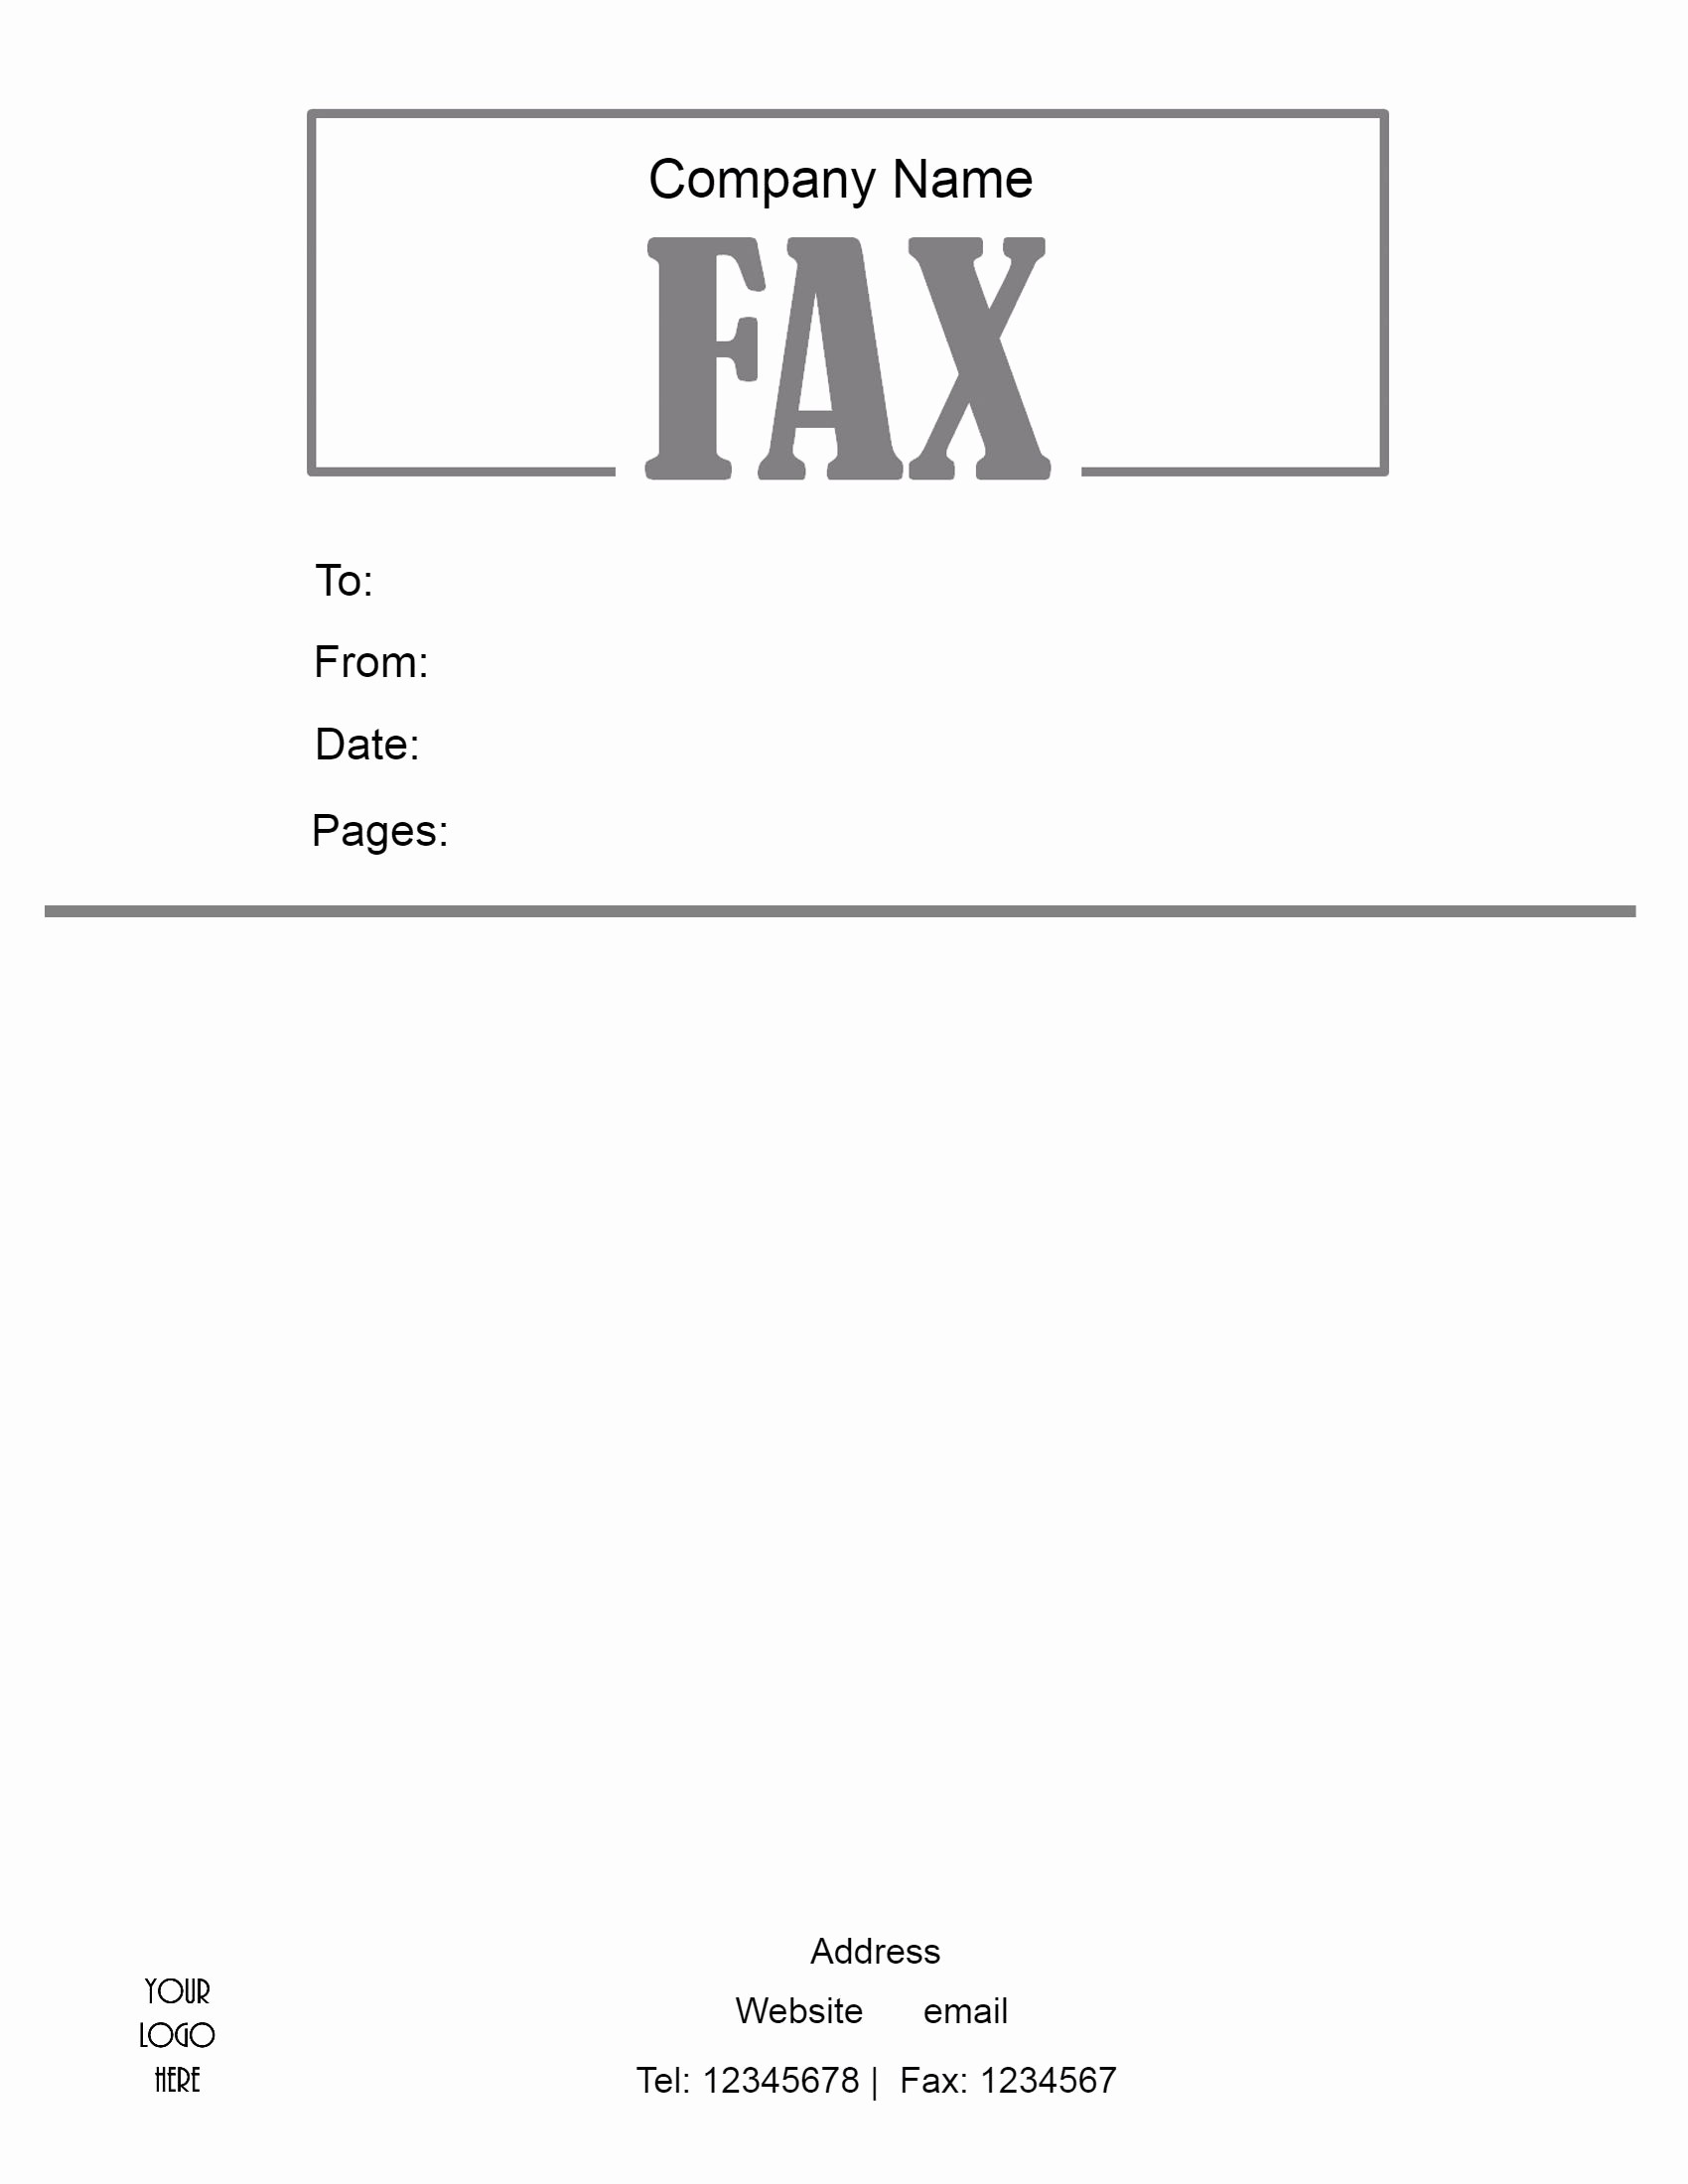 Medical Office Fax Cover Sheet Lovely Free Fax Cover Sheet Template